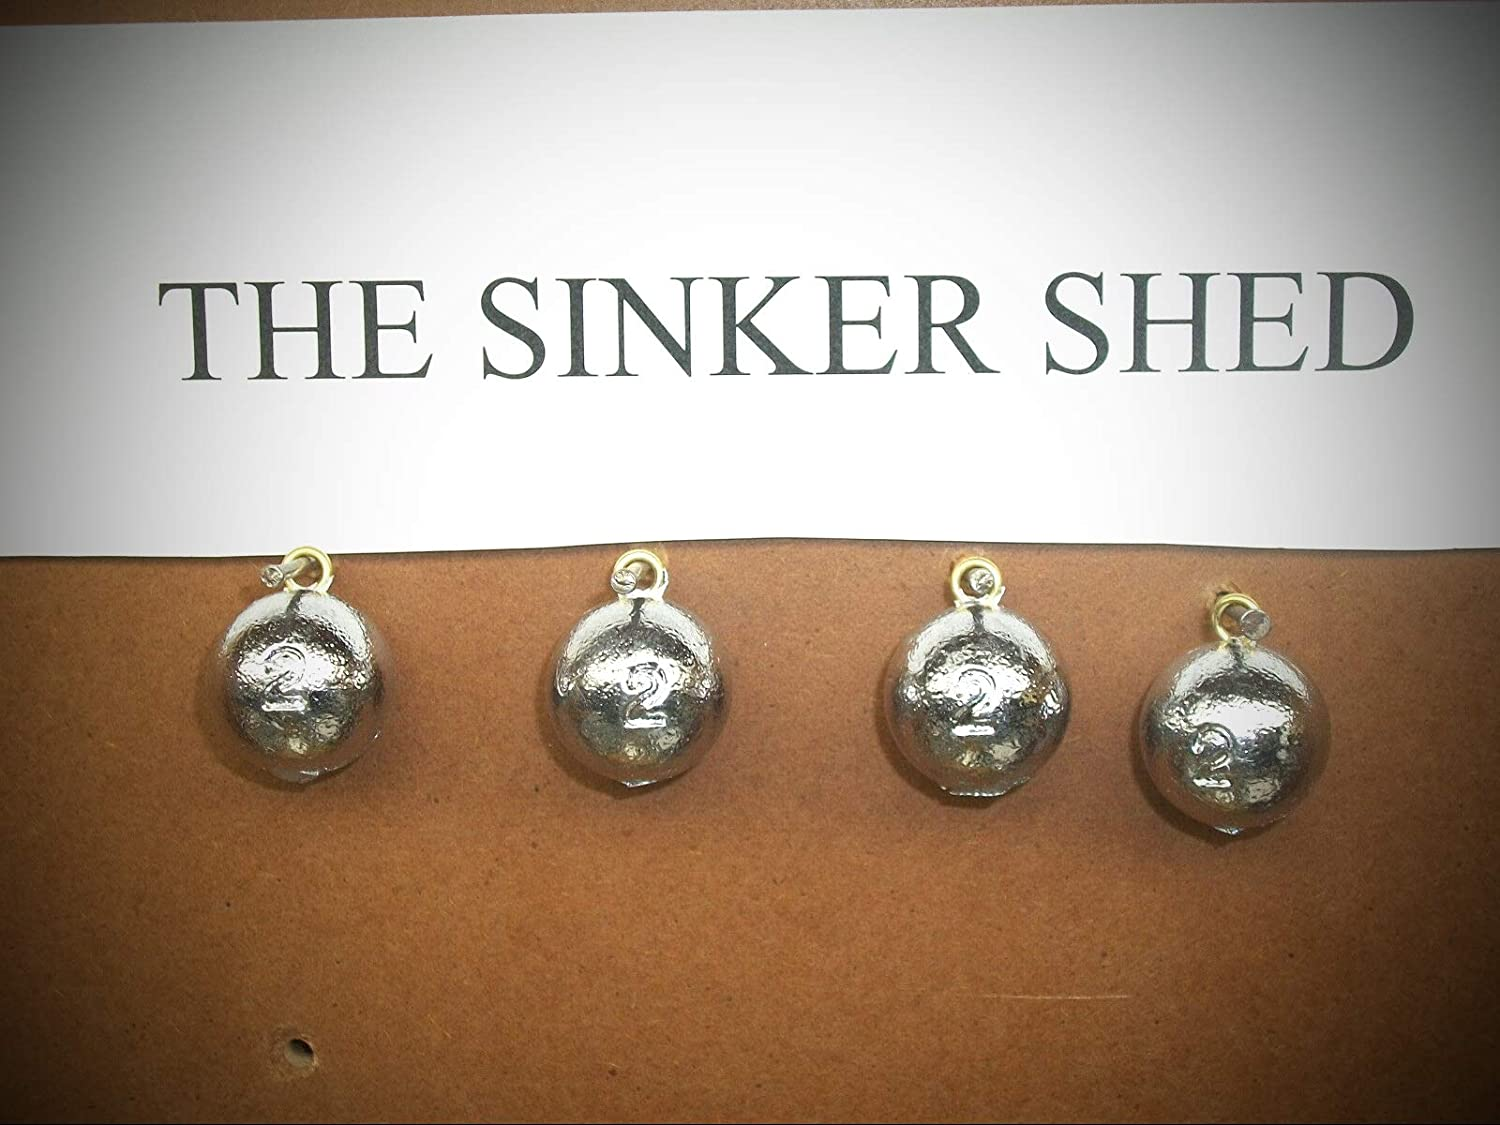 Lot of 12 Pyramid Fishing sinkers 4 of each 4 5 and 6 oz weights